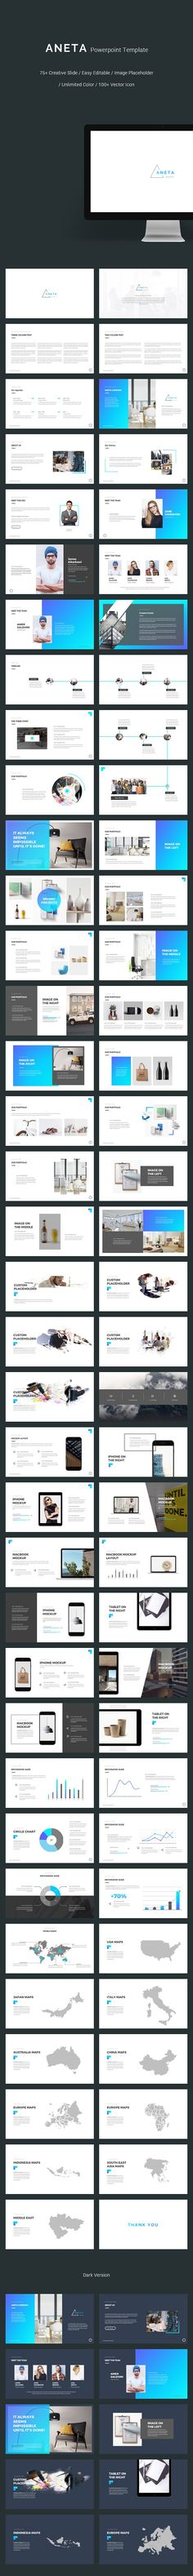 242 best Presentation Design images on Pinterest in 2018 Graphics - 2 X 4 Label Template 10 Per Sheet